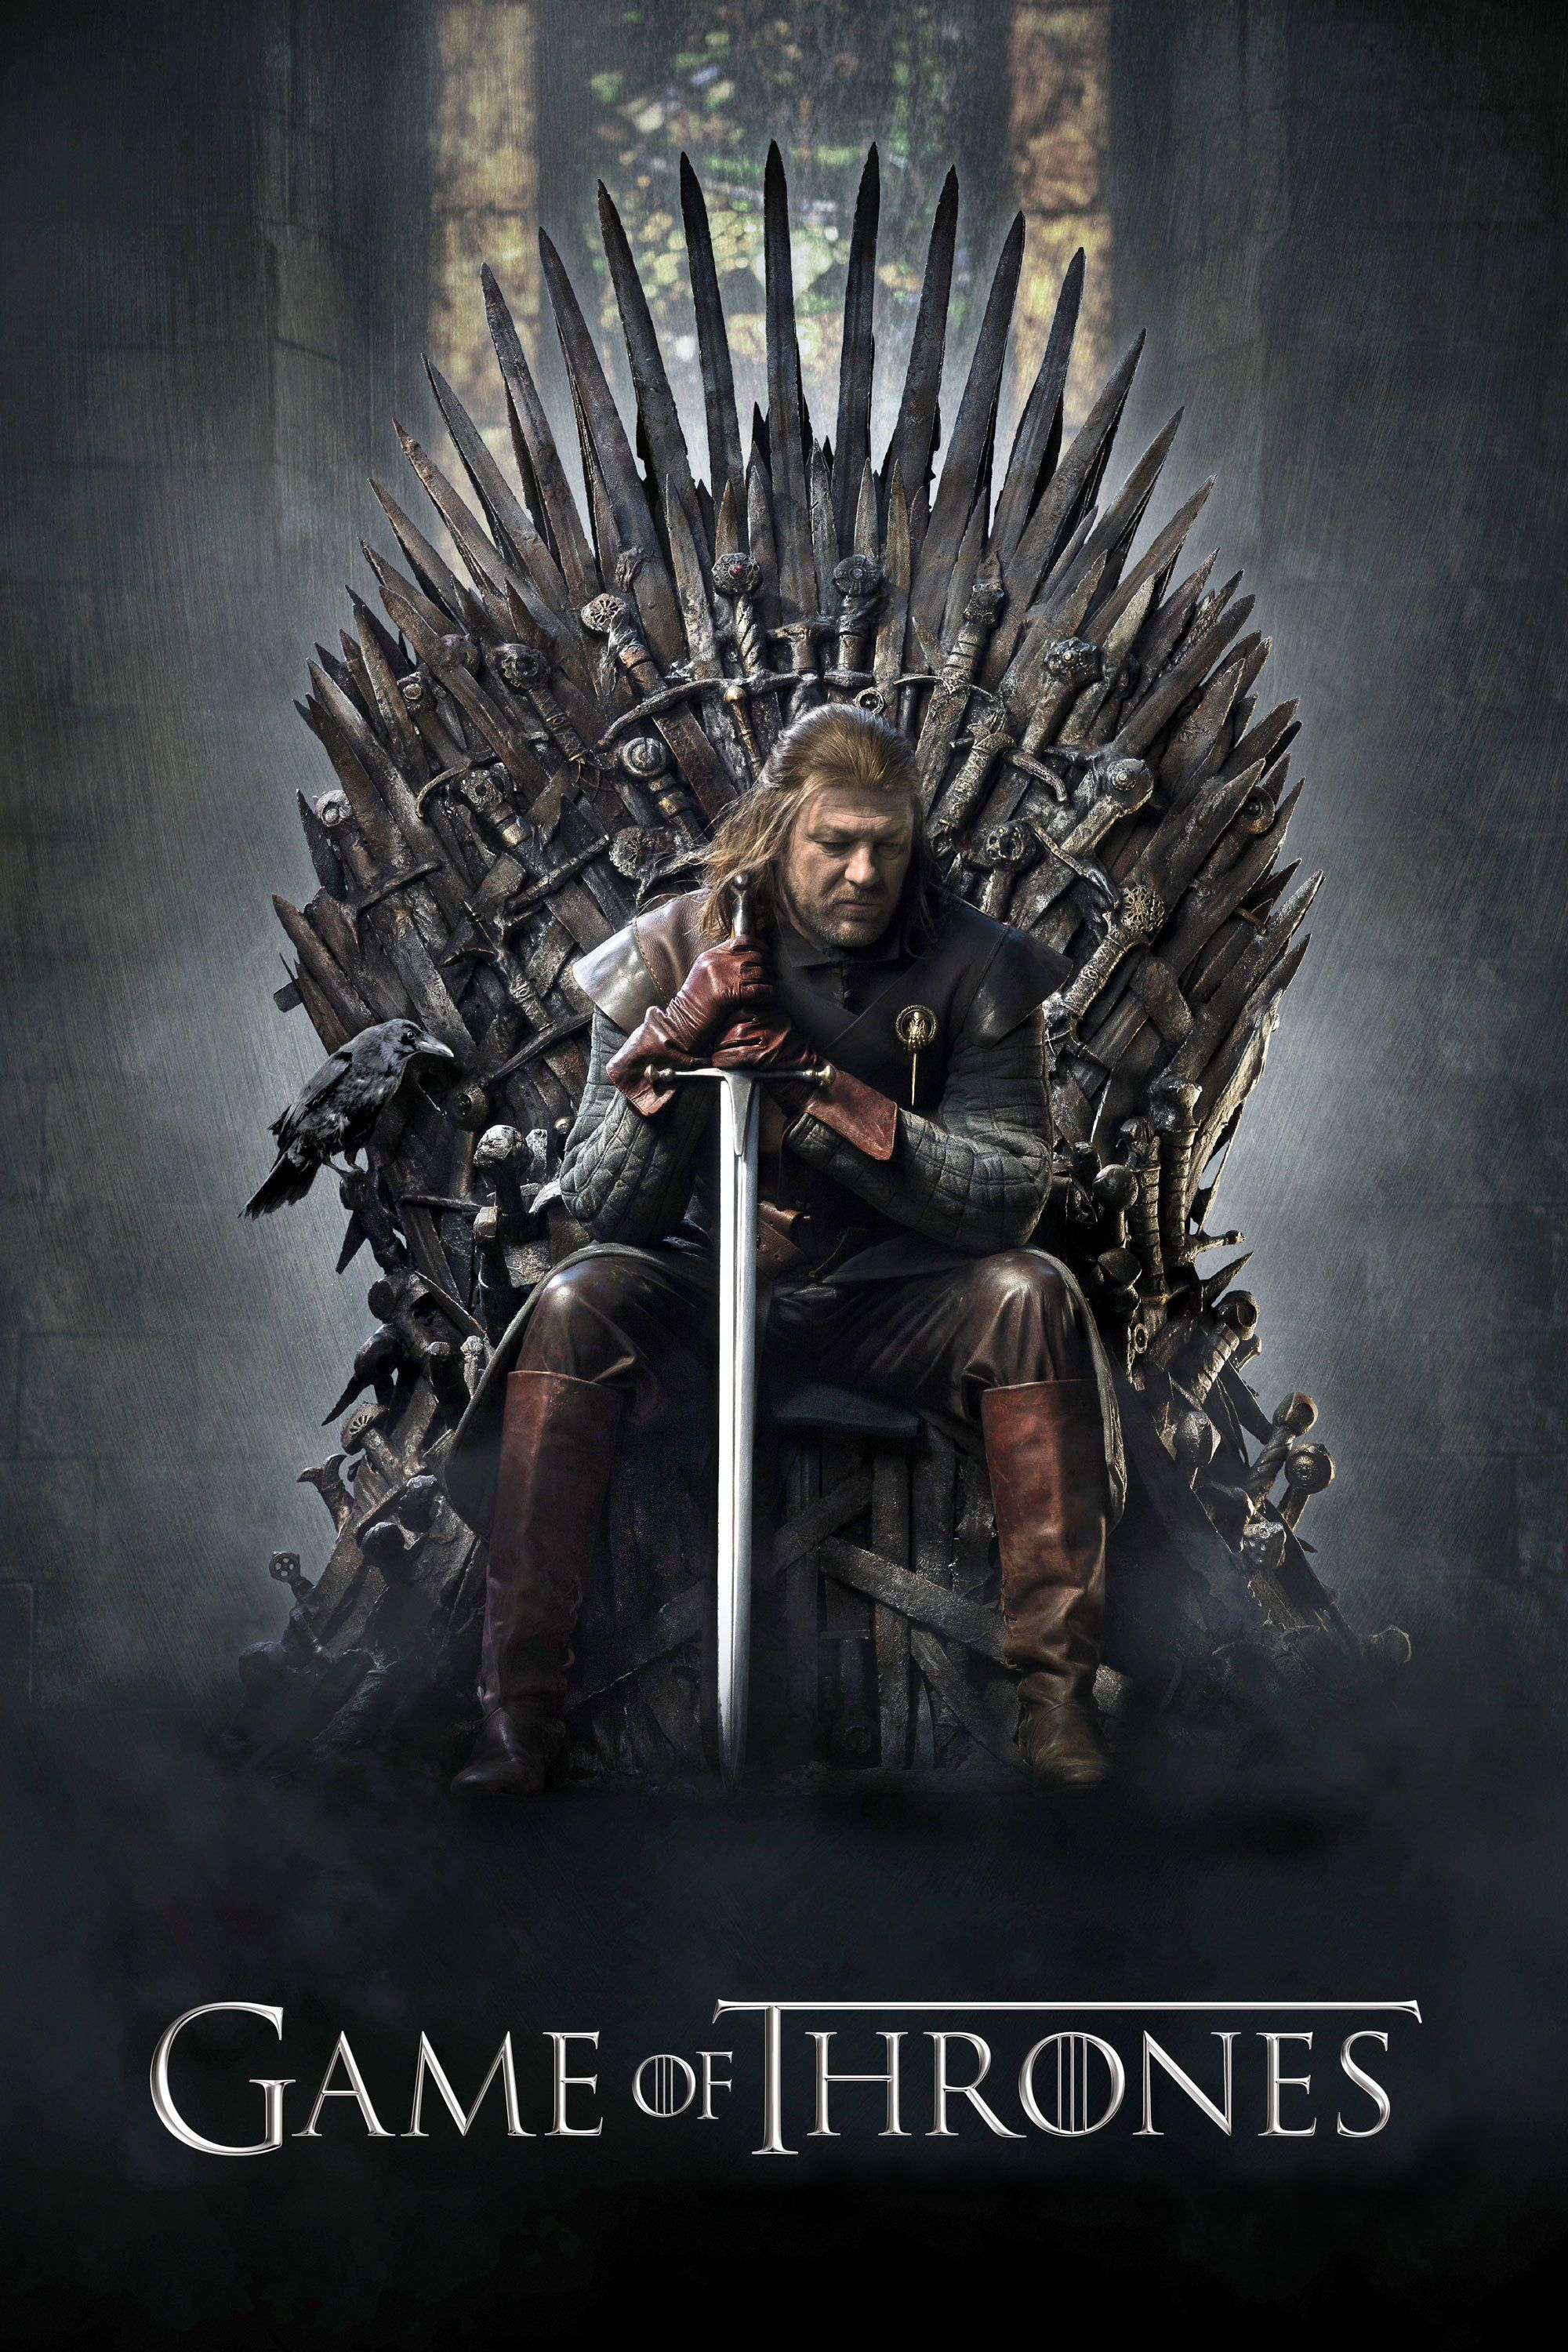 game of thrones season 1 free streaming hd